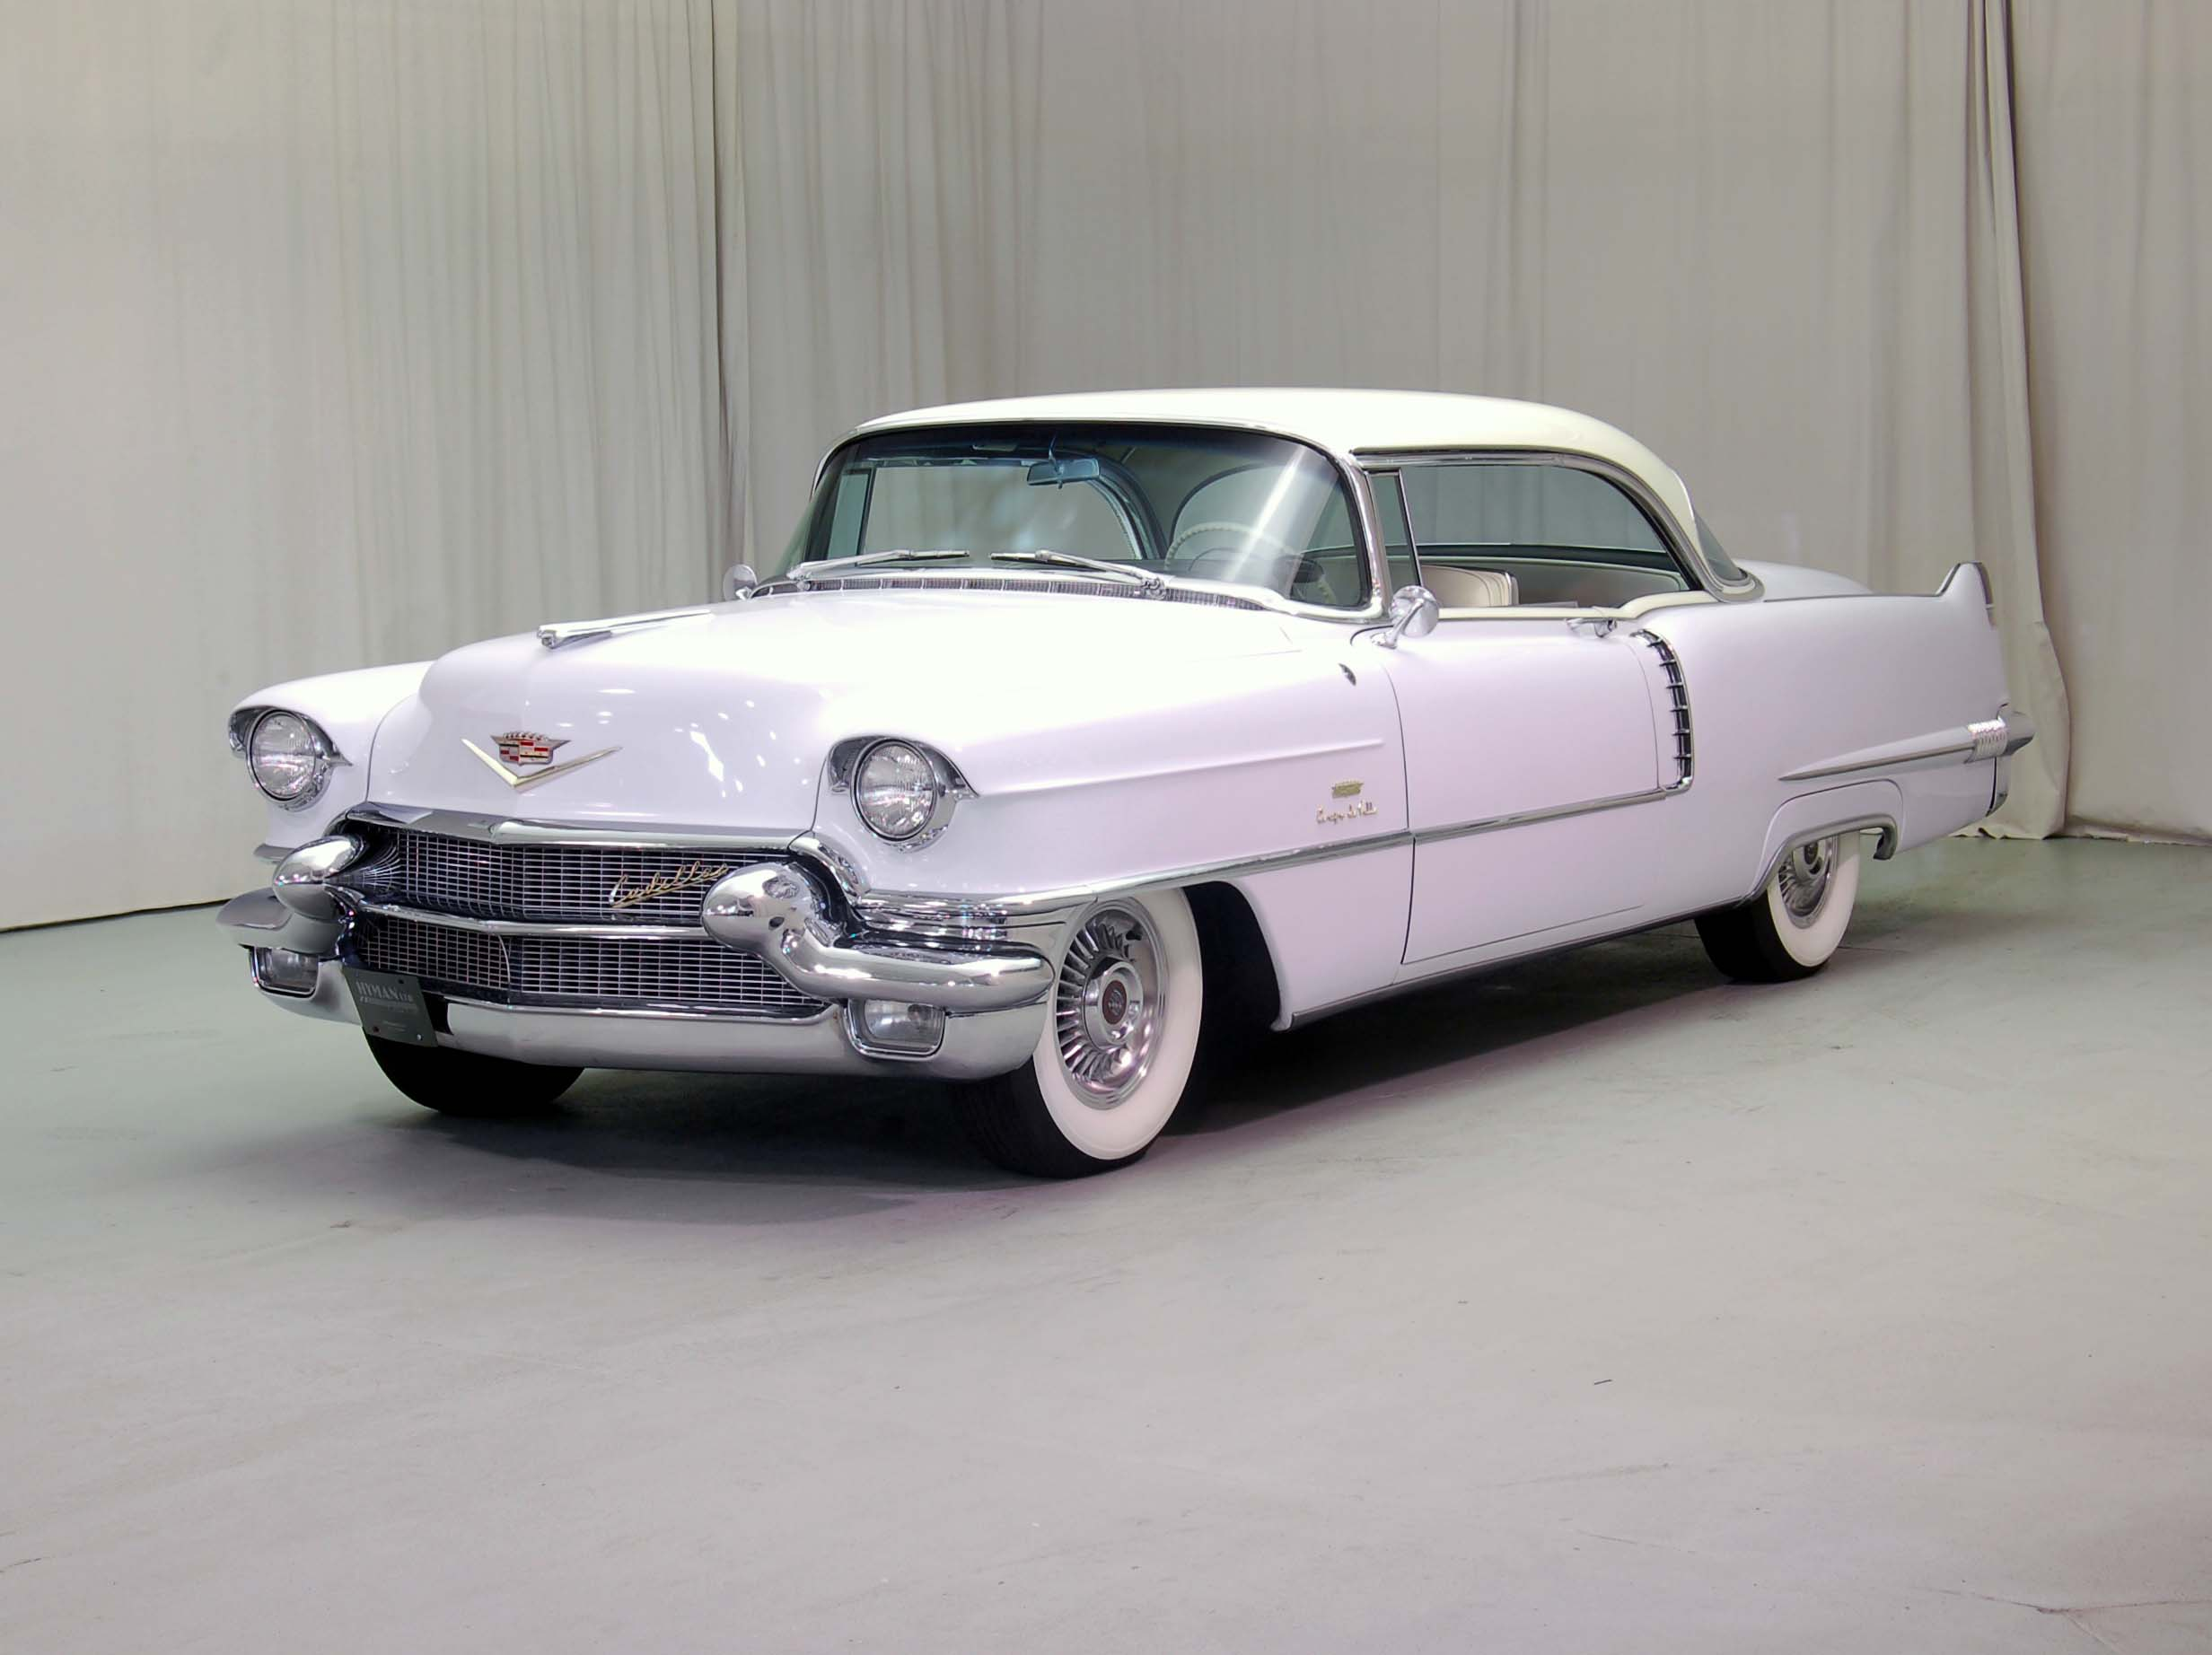 1956 Cadillac Coupe De Ville Wallpapers Background